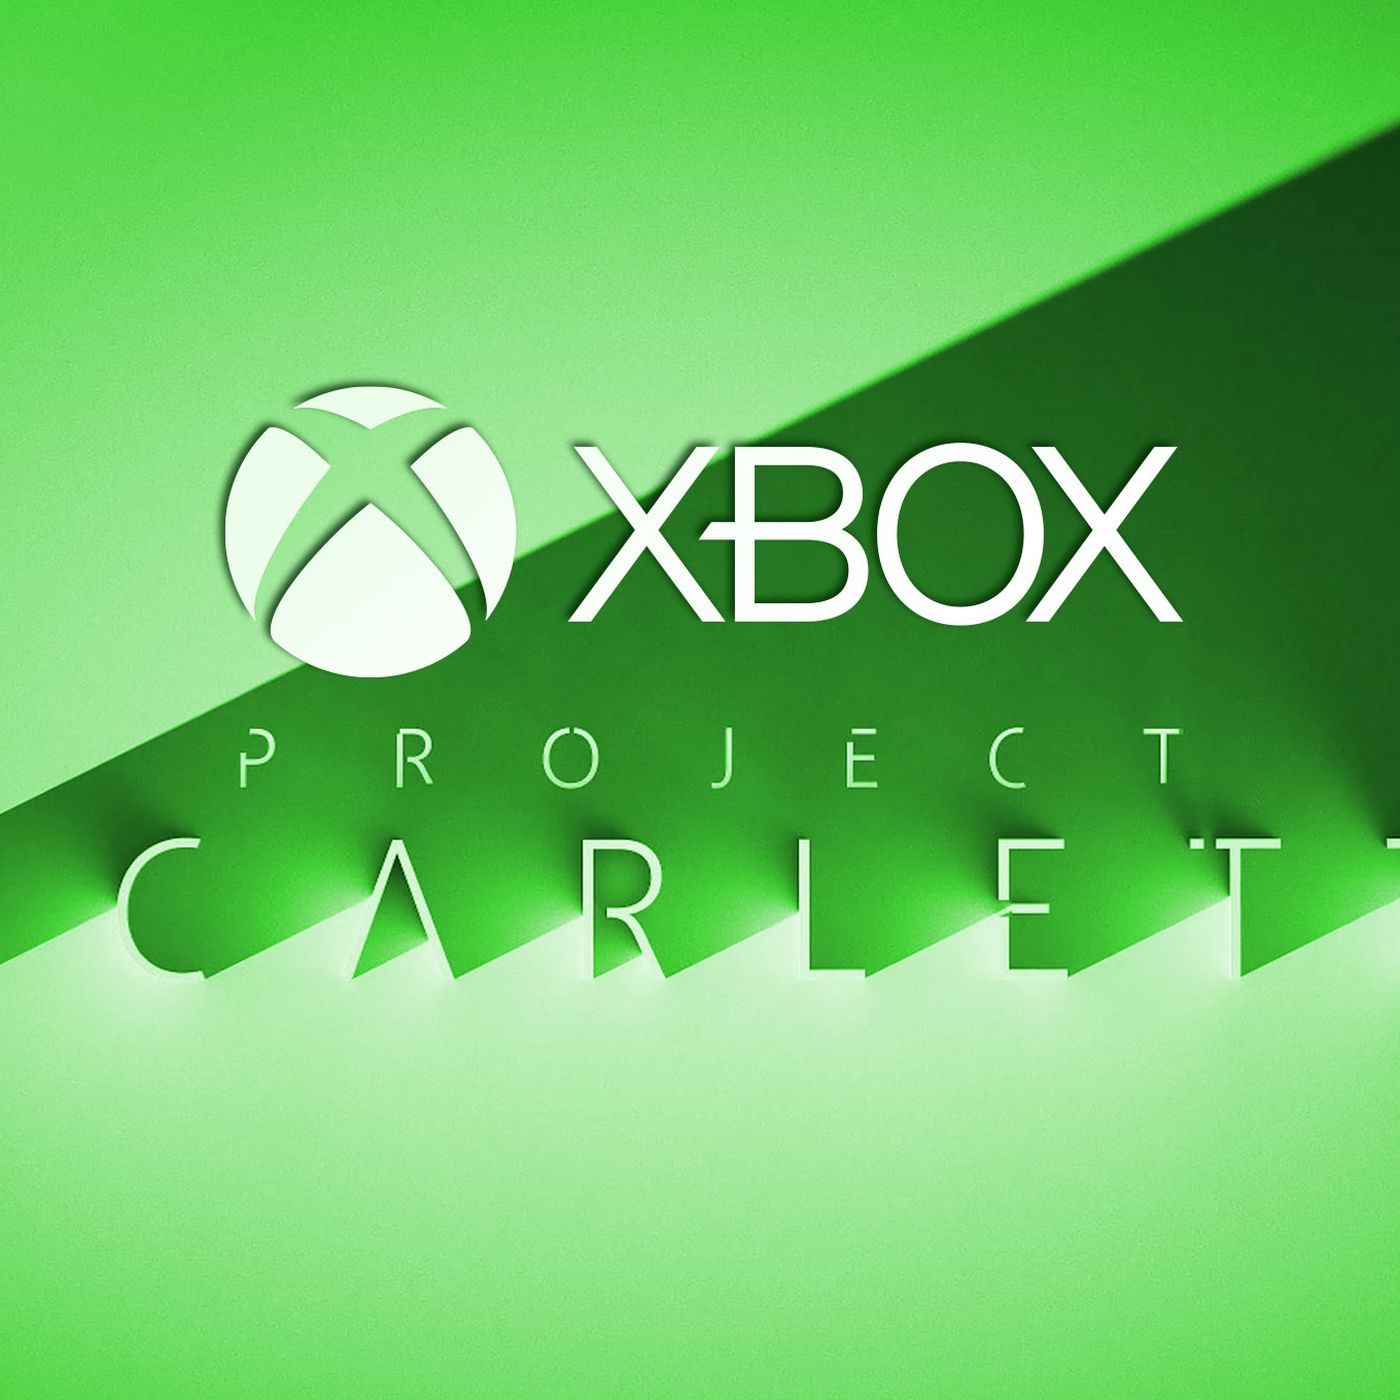 Xbox Scarlett details: What we know about release date